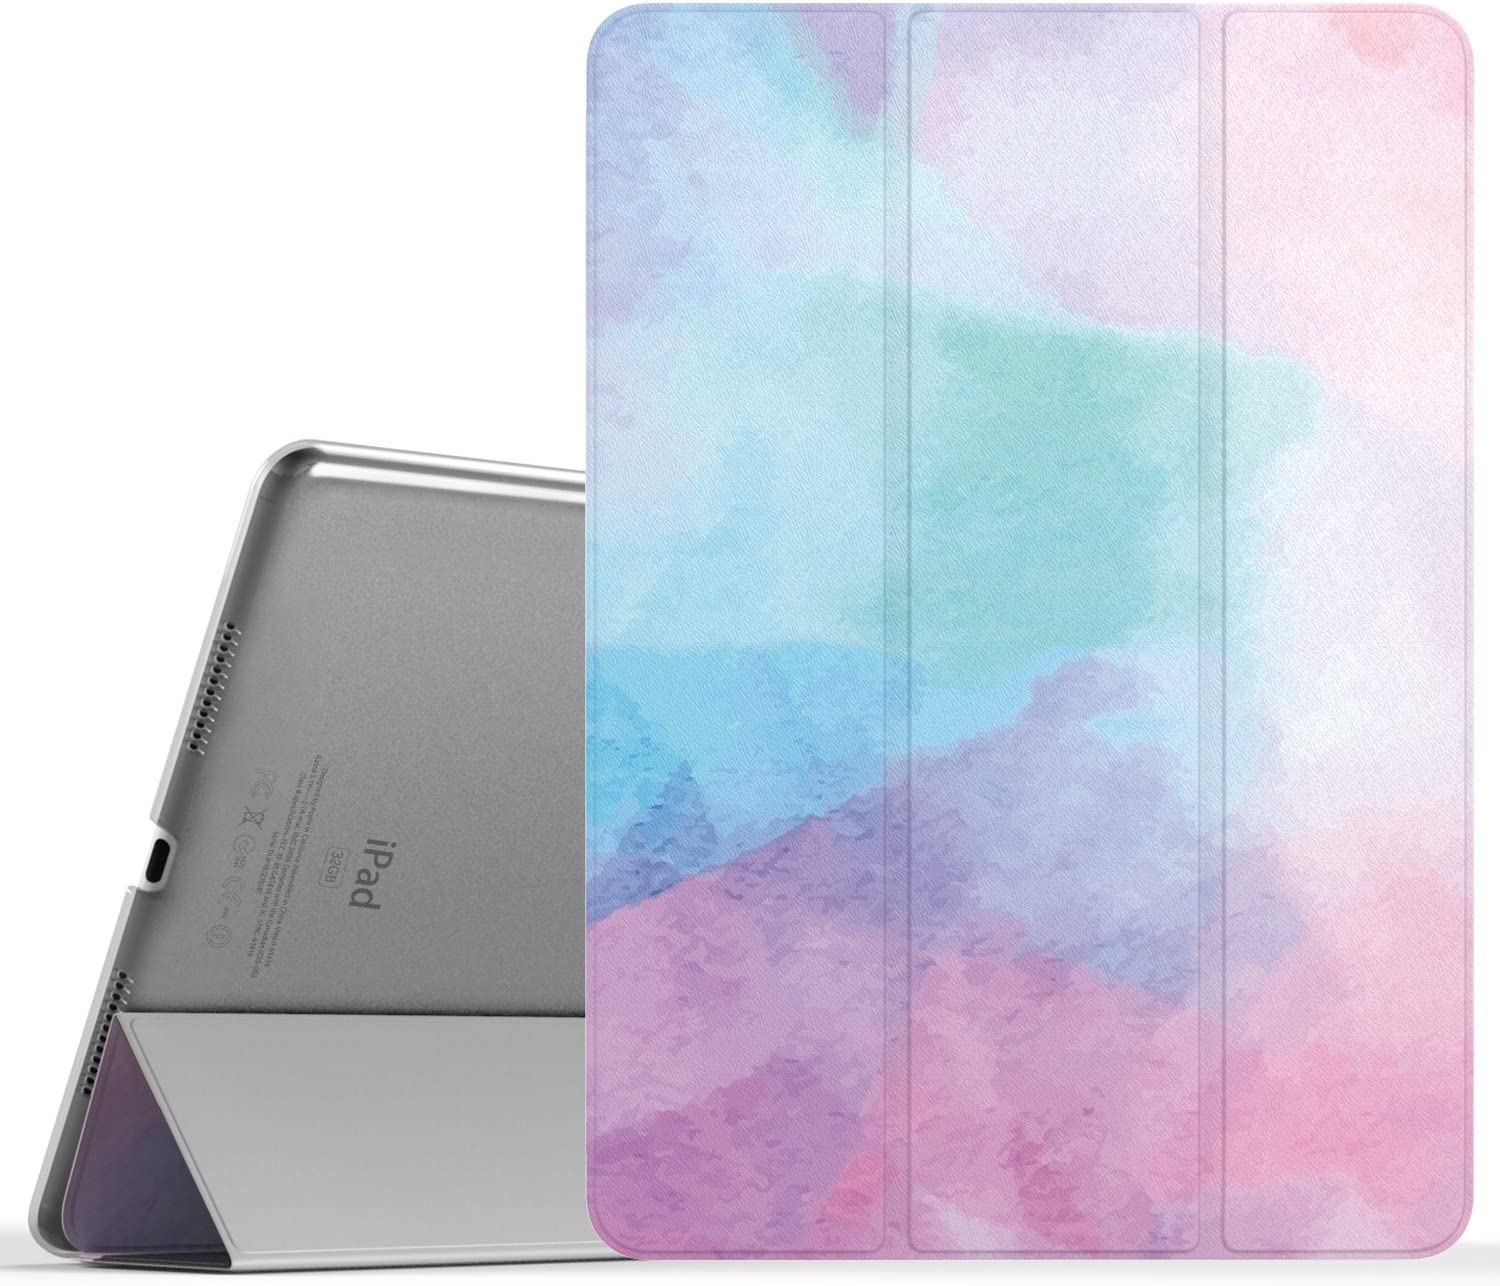 MoKo Case Fit iPad Pro 9.7 - Slim Lightweight Smart Shell Stand Cover with Translucent Frosted Back Protector Fit iPad Pro 9.7 Inch 2016 Release Tablet ONLY, Water Color (with Auto Wake/Sleep)